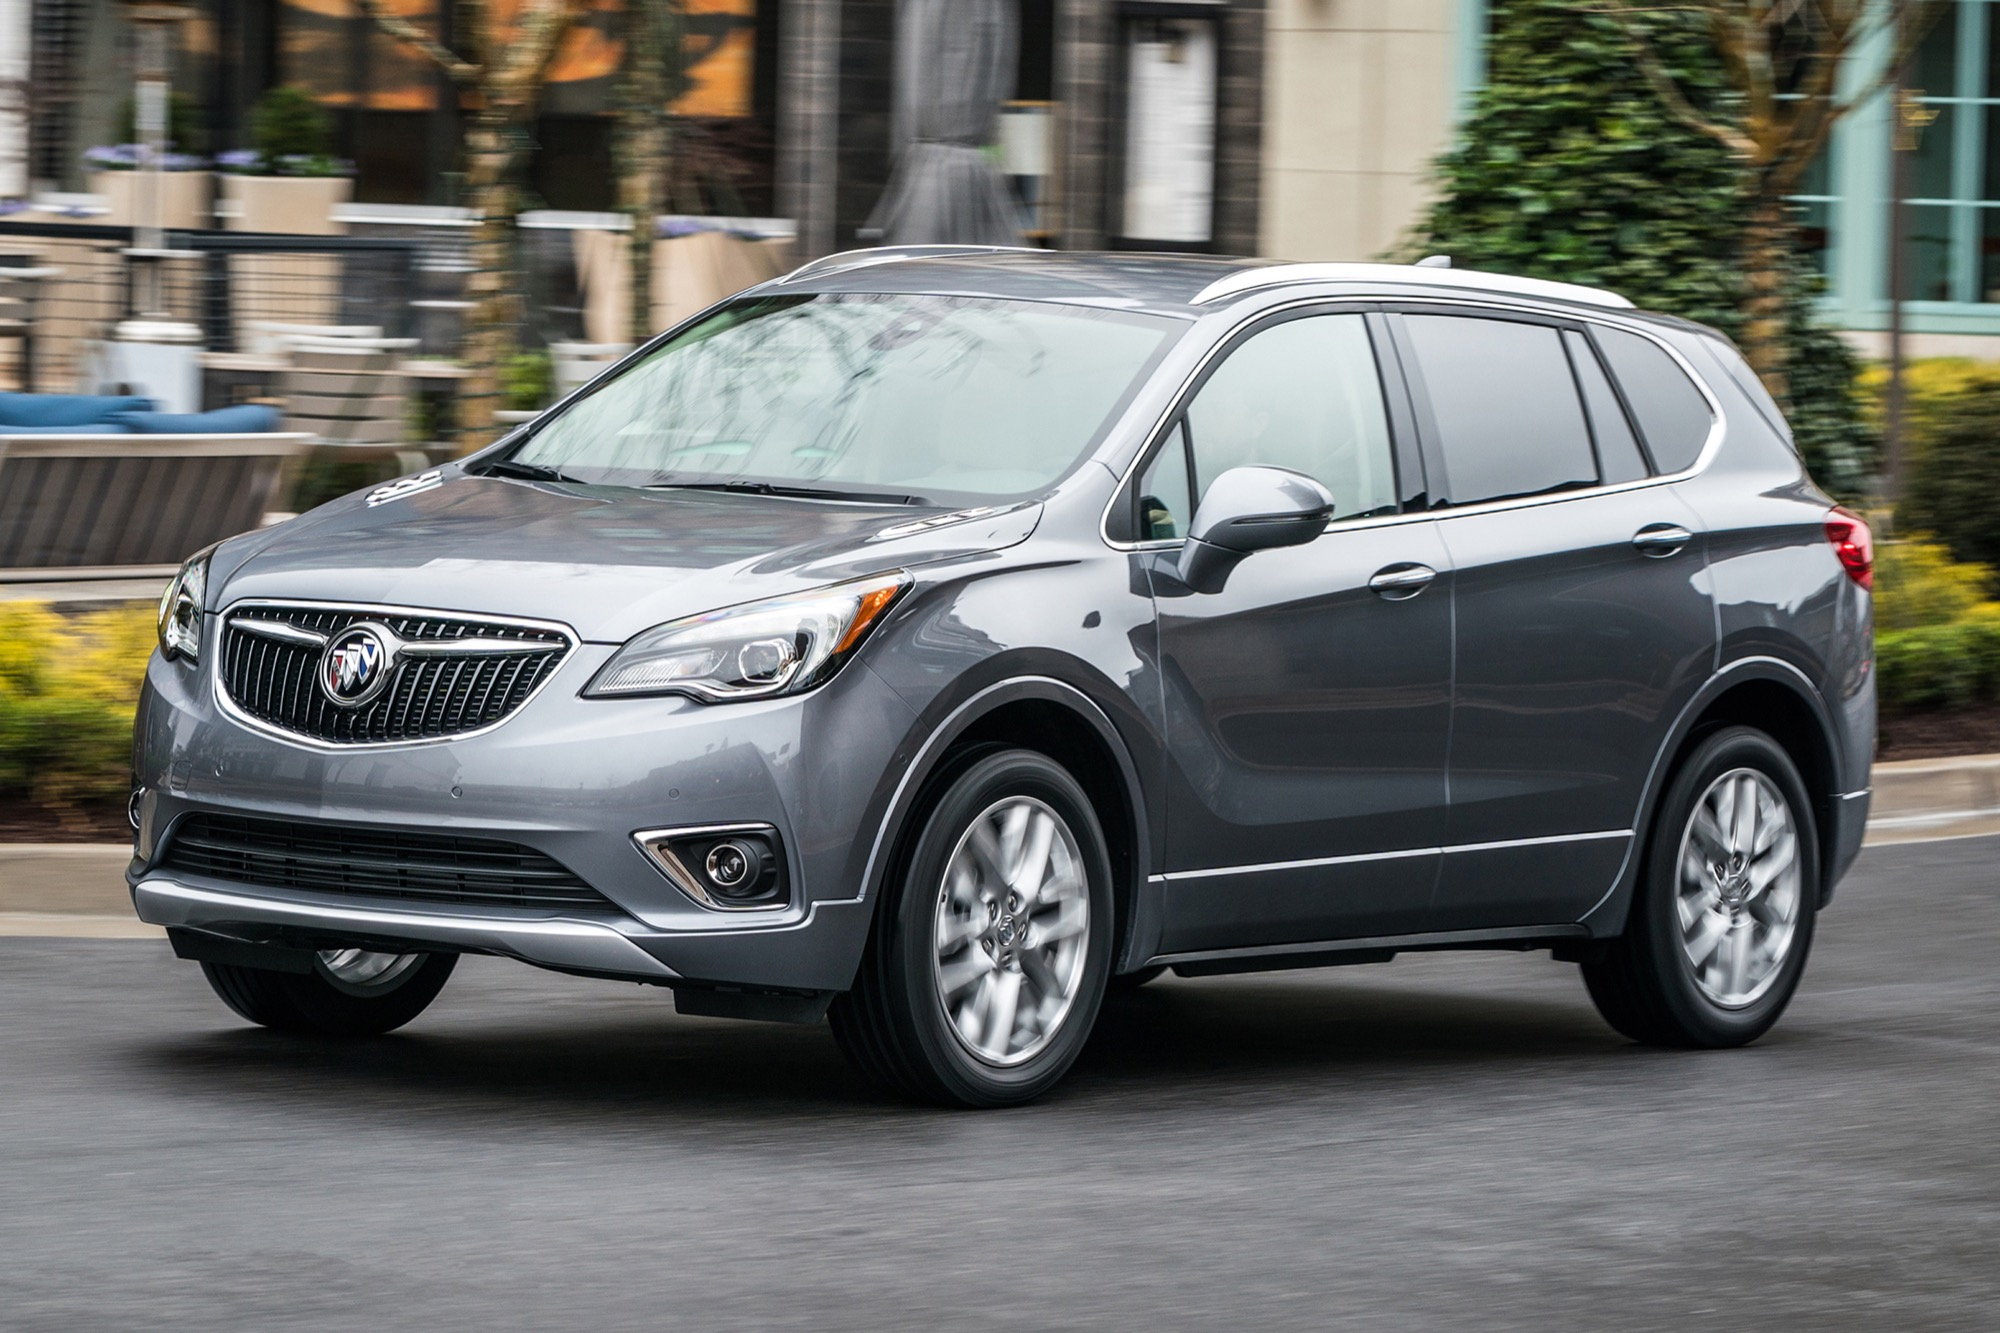 2019 Buick Envision Interactive Questions & Answers | Gm Can A New 2021 Buick Envision Be Flat Towed